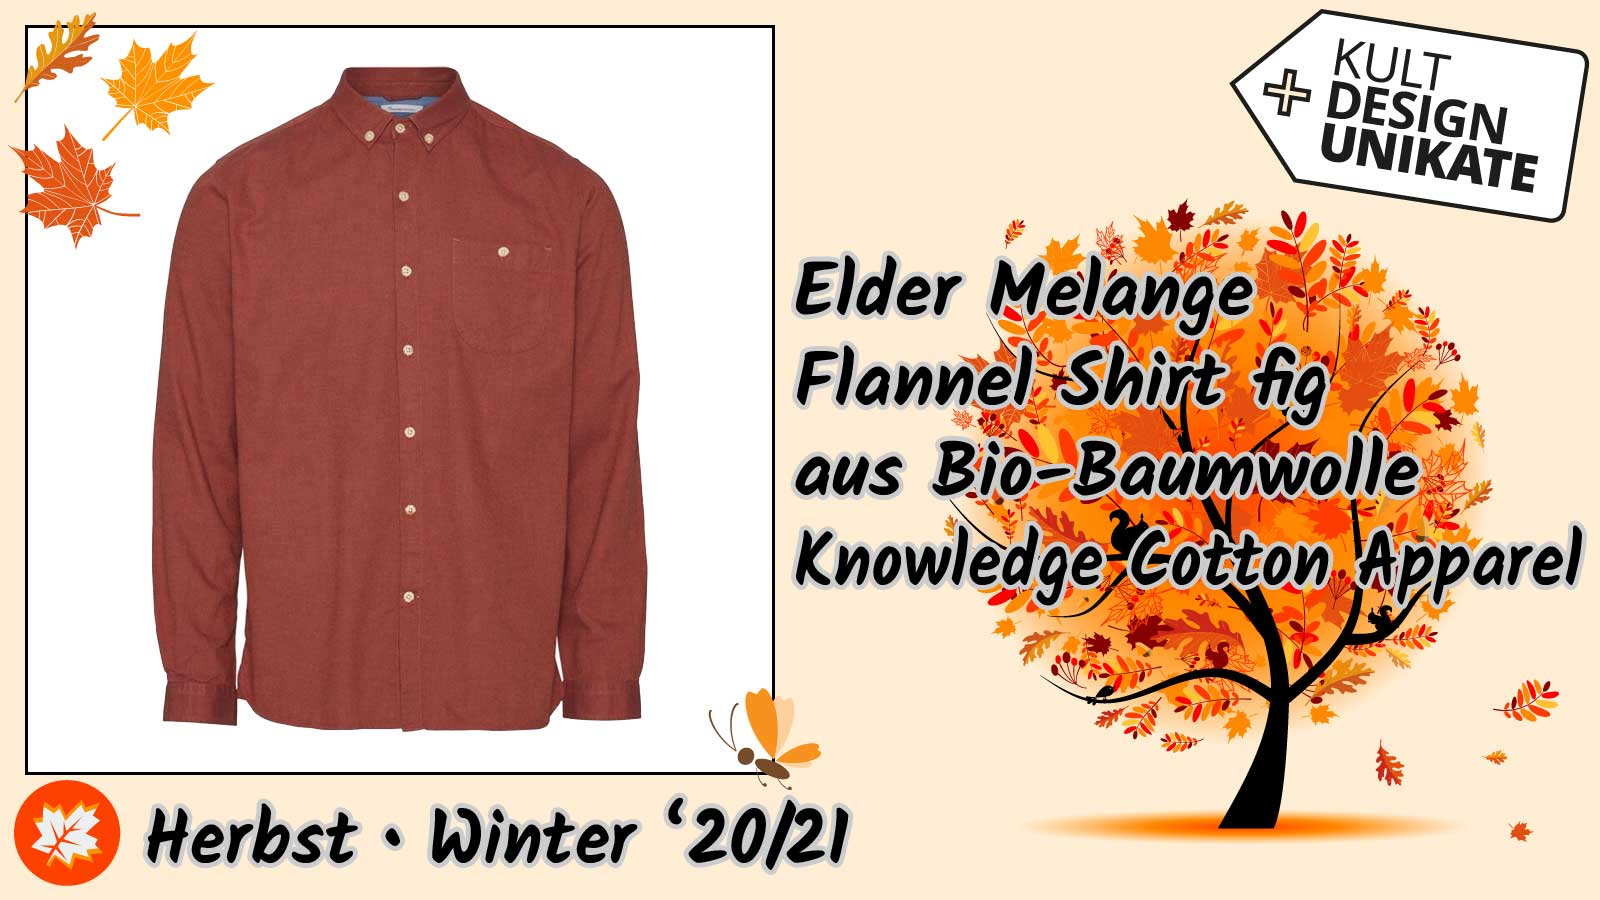 KCA-Elder-Melange-Flannel-Shirt-fig